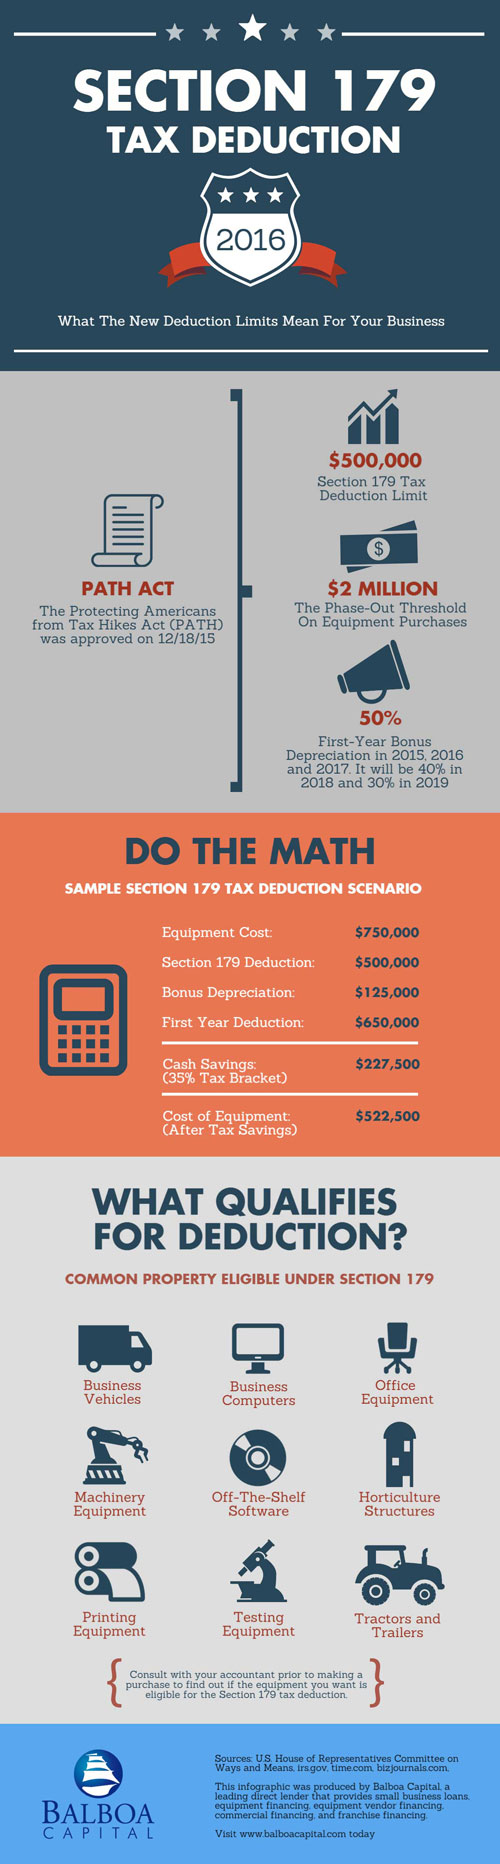 Section 179 Tax Deduction For Businesses {infographic. Hampton College Virginia Pc Telephone Service. Starting Salary Mechanical Engineer. Single Invoice Factoring Uc Graduate Programs. Life Medical Equipment Enterprise Nas Storage. Annual Travel Insurance Policies. Redeeming United Miles Vacations For Teachers. Best Criminal Lawyer In Texas. Create Html Email Templates Capitol One Auto